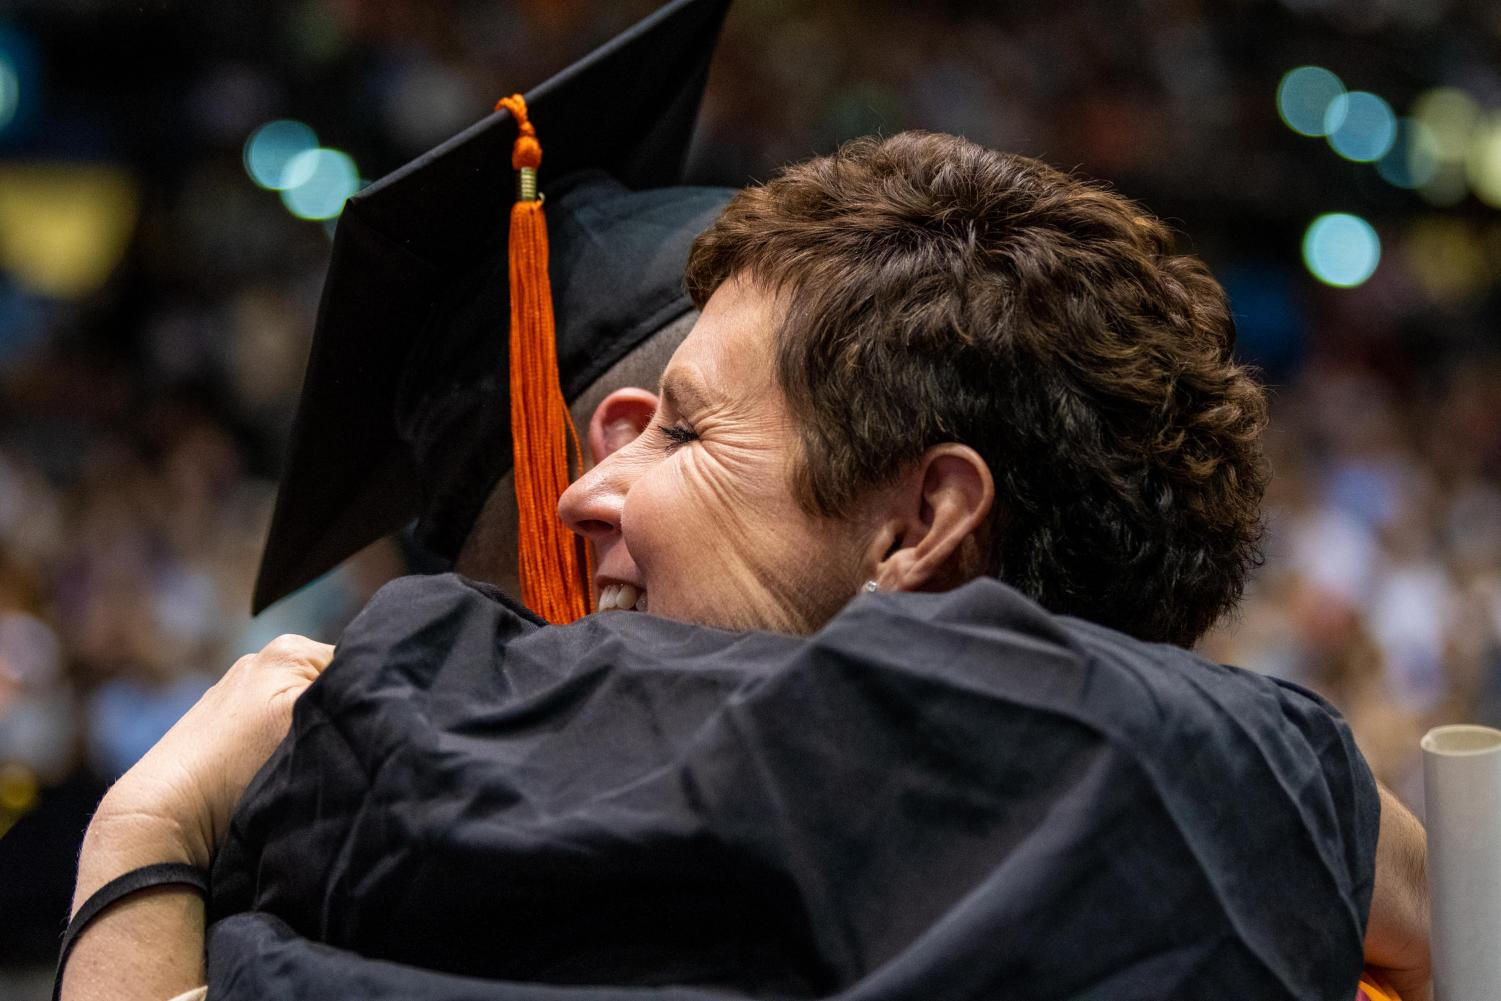 After+receiving+diplomas+students+and+teachers+react+on+Saturday%2C+May+11%2C+2019+during+the+2019+commencement+inside+the+SIU+Arena.+